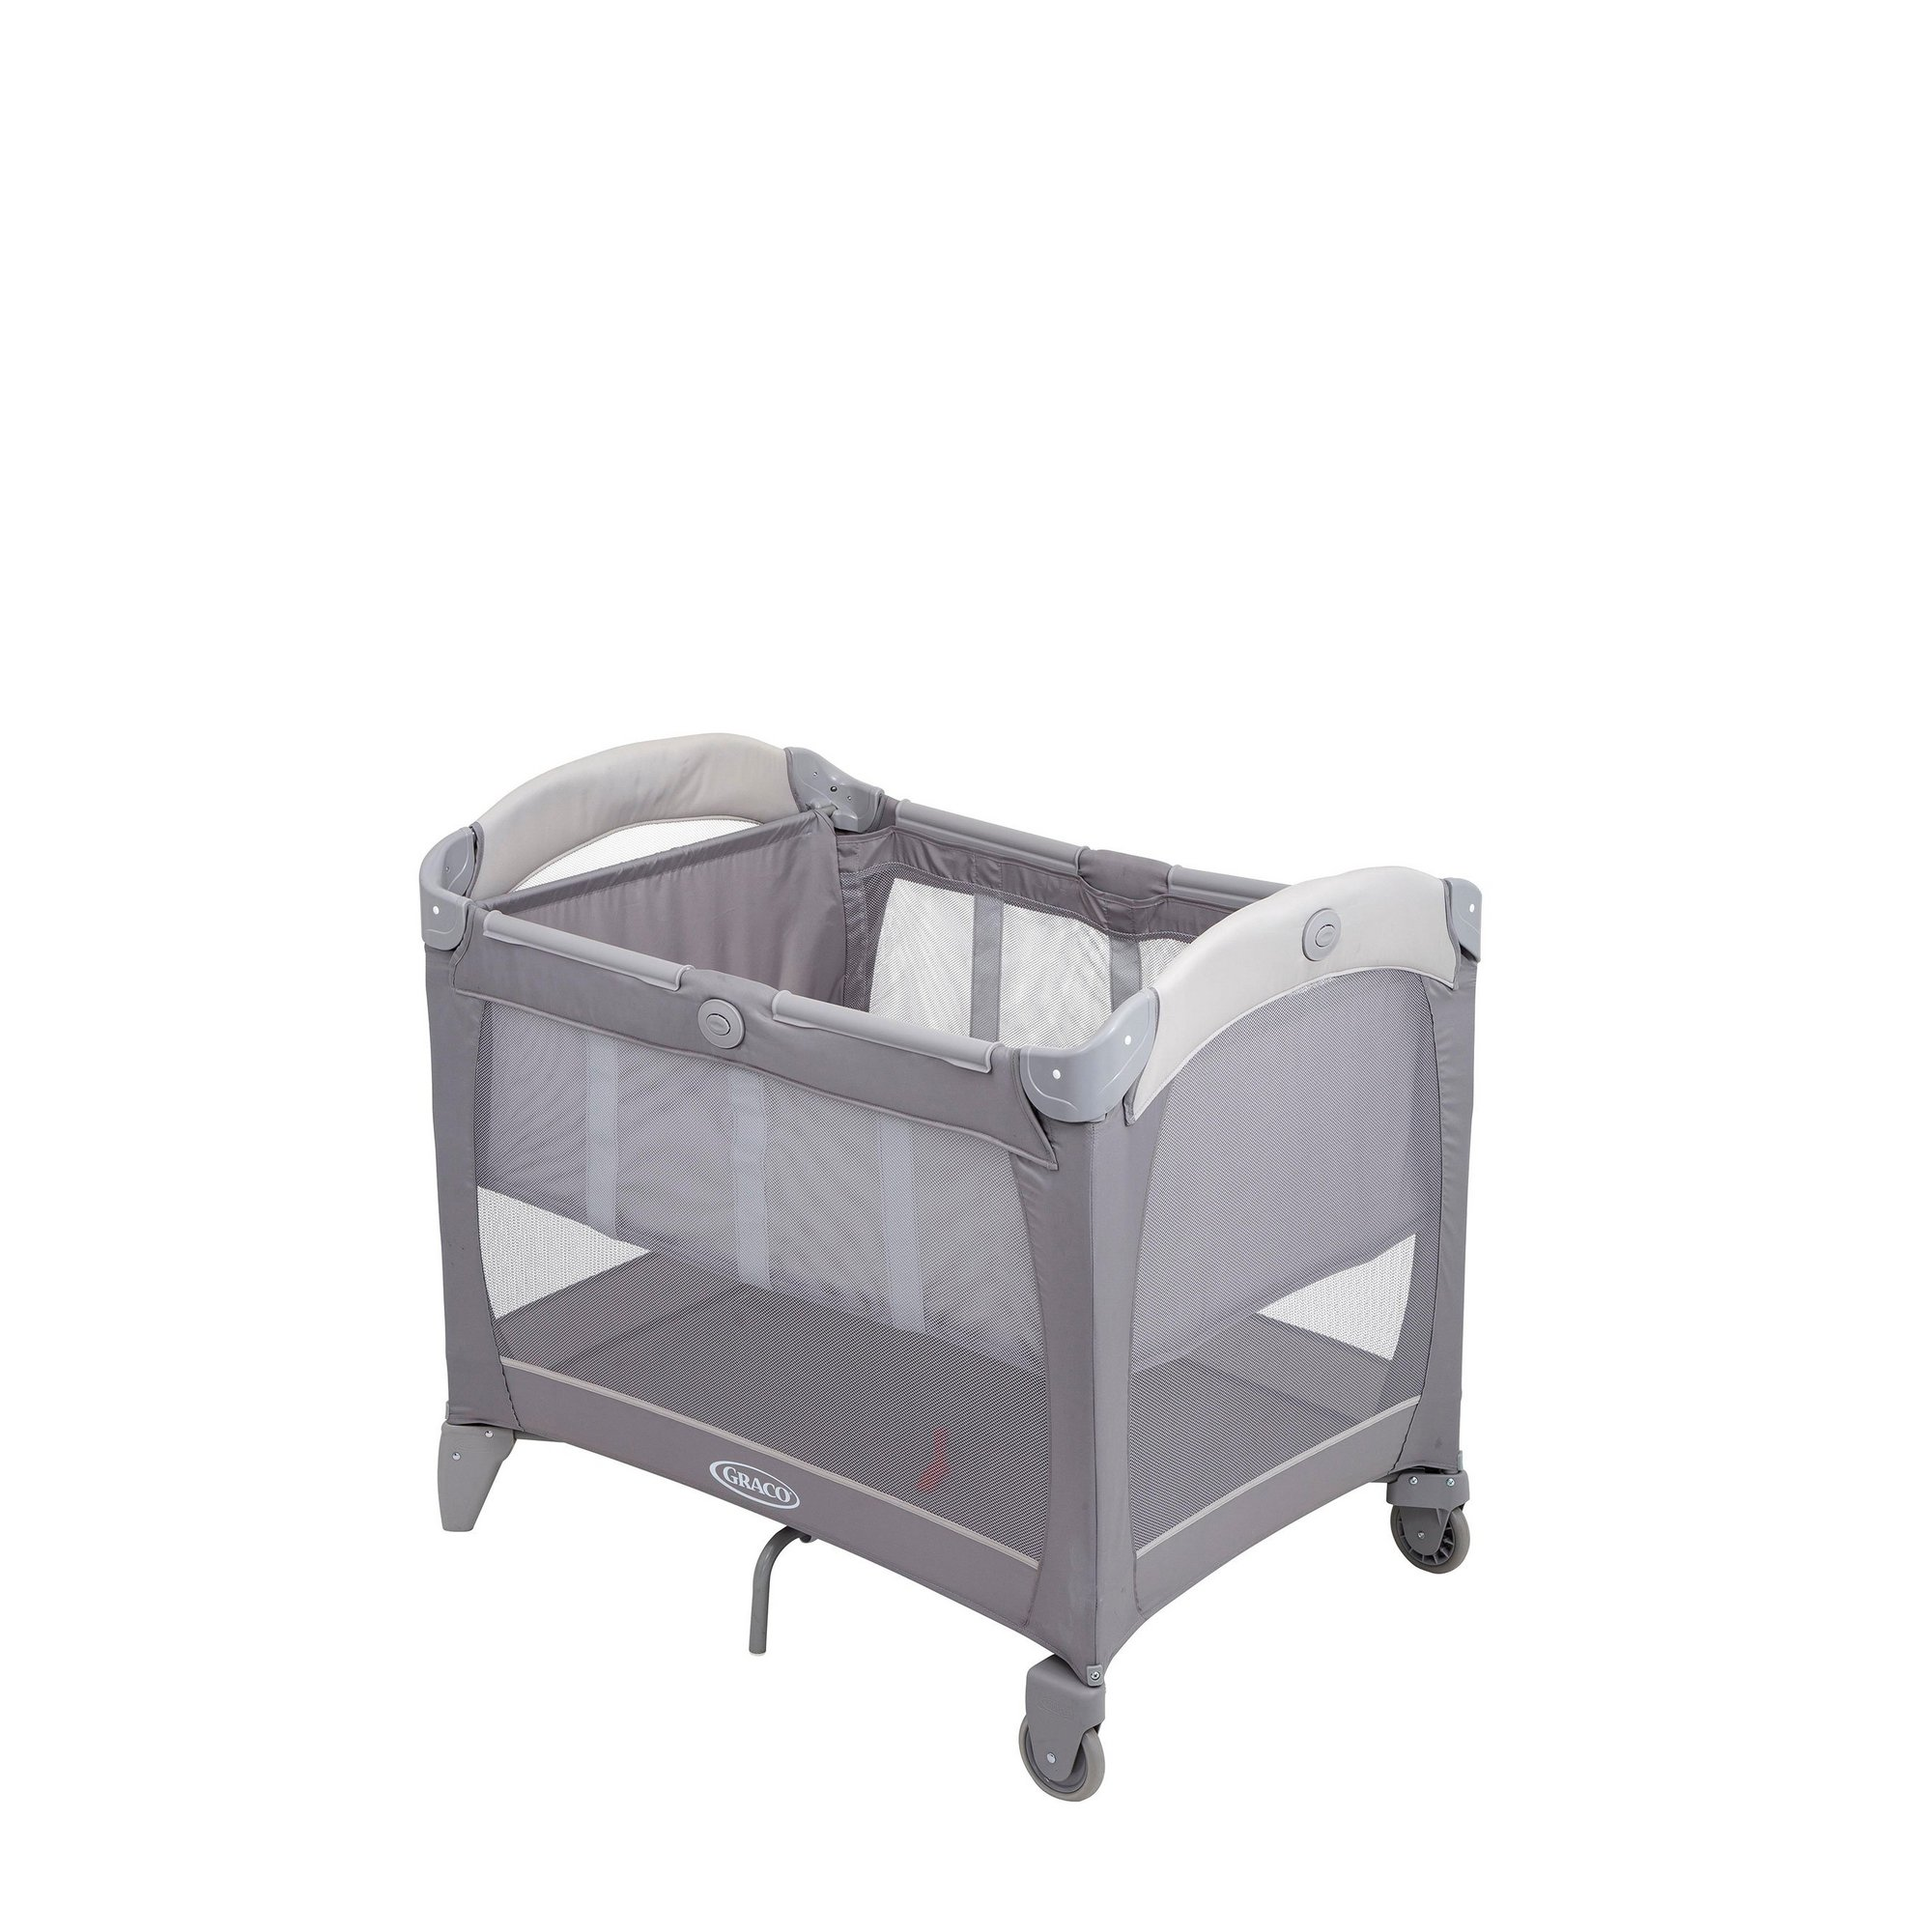 Image of Graco Contour Bassinet Travel Cot -Paloma